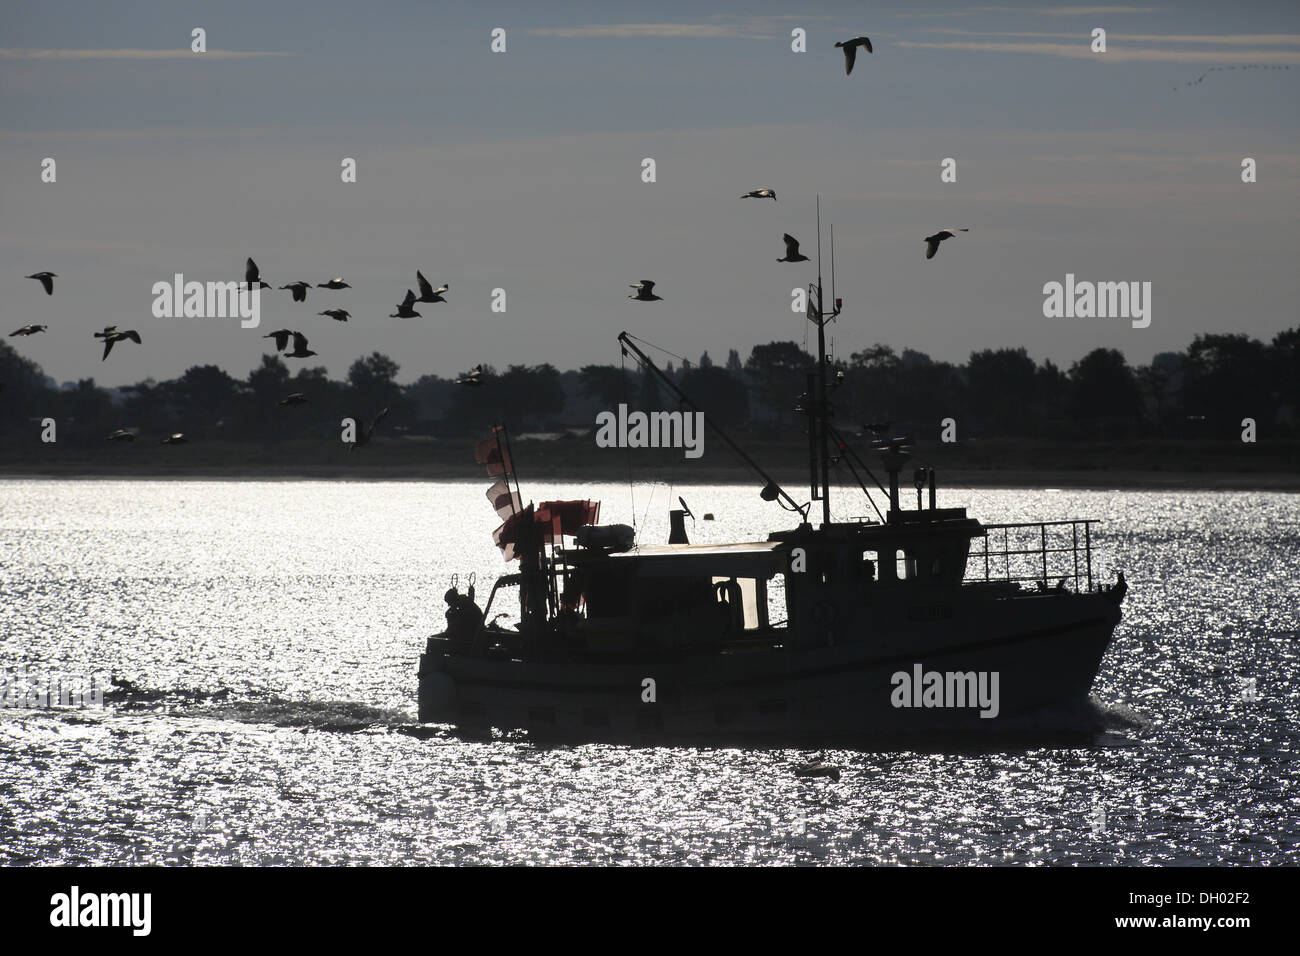 Fishing boat, accompanied by a flock of seagulls, on its way back to Travemuende, Schleswig-Holstein - Stock Image